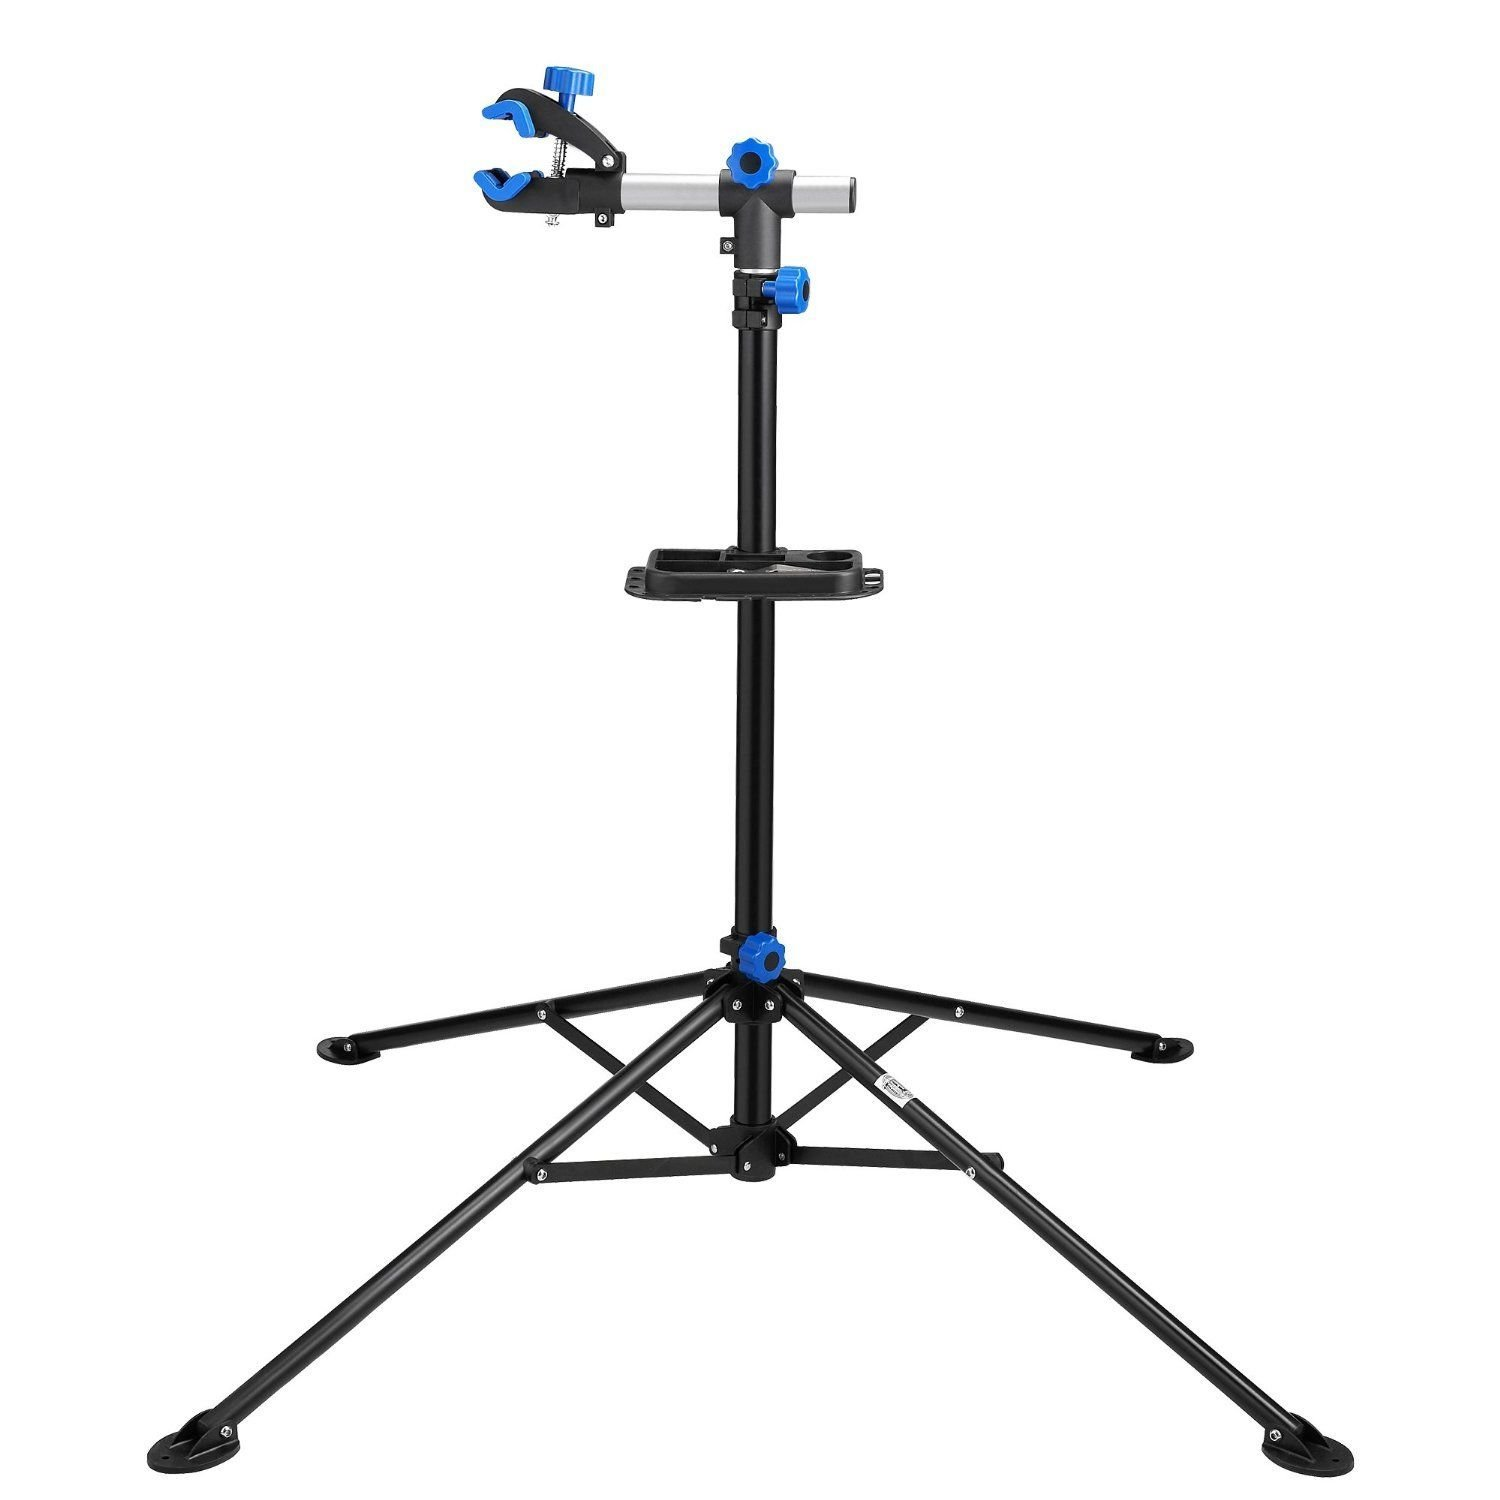 Products 2008-PRO-STAND Pro Bicycle Adjustable Repair Stand by Alitop (Image #3)